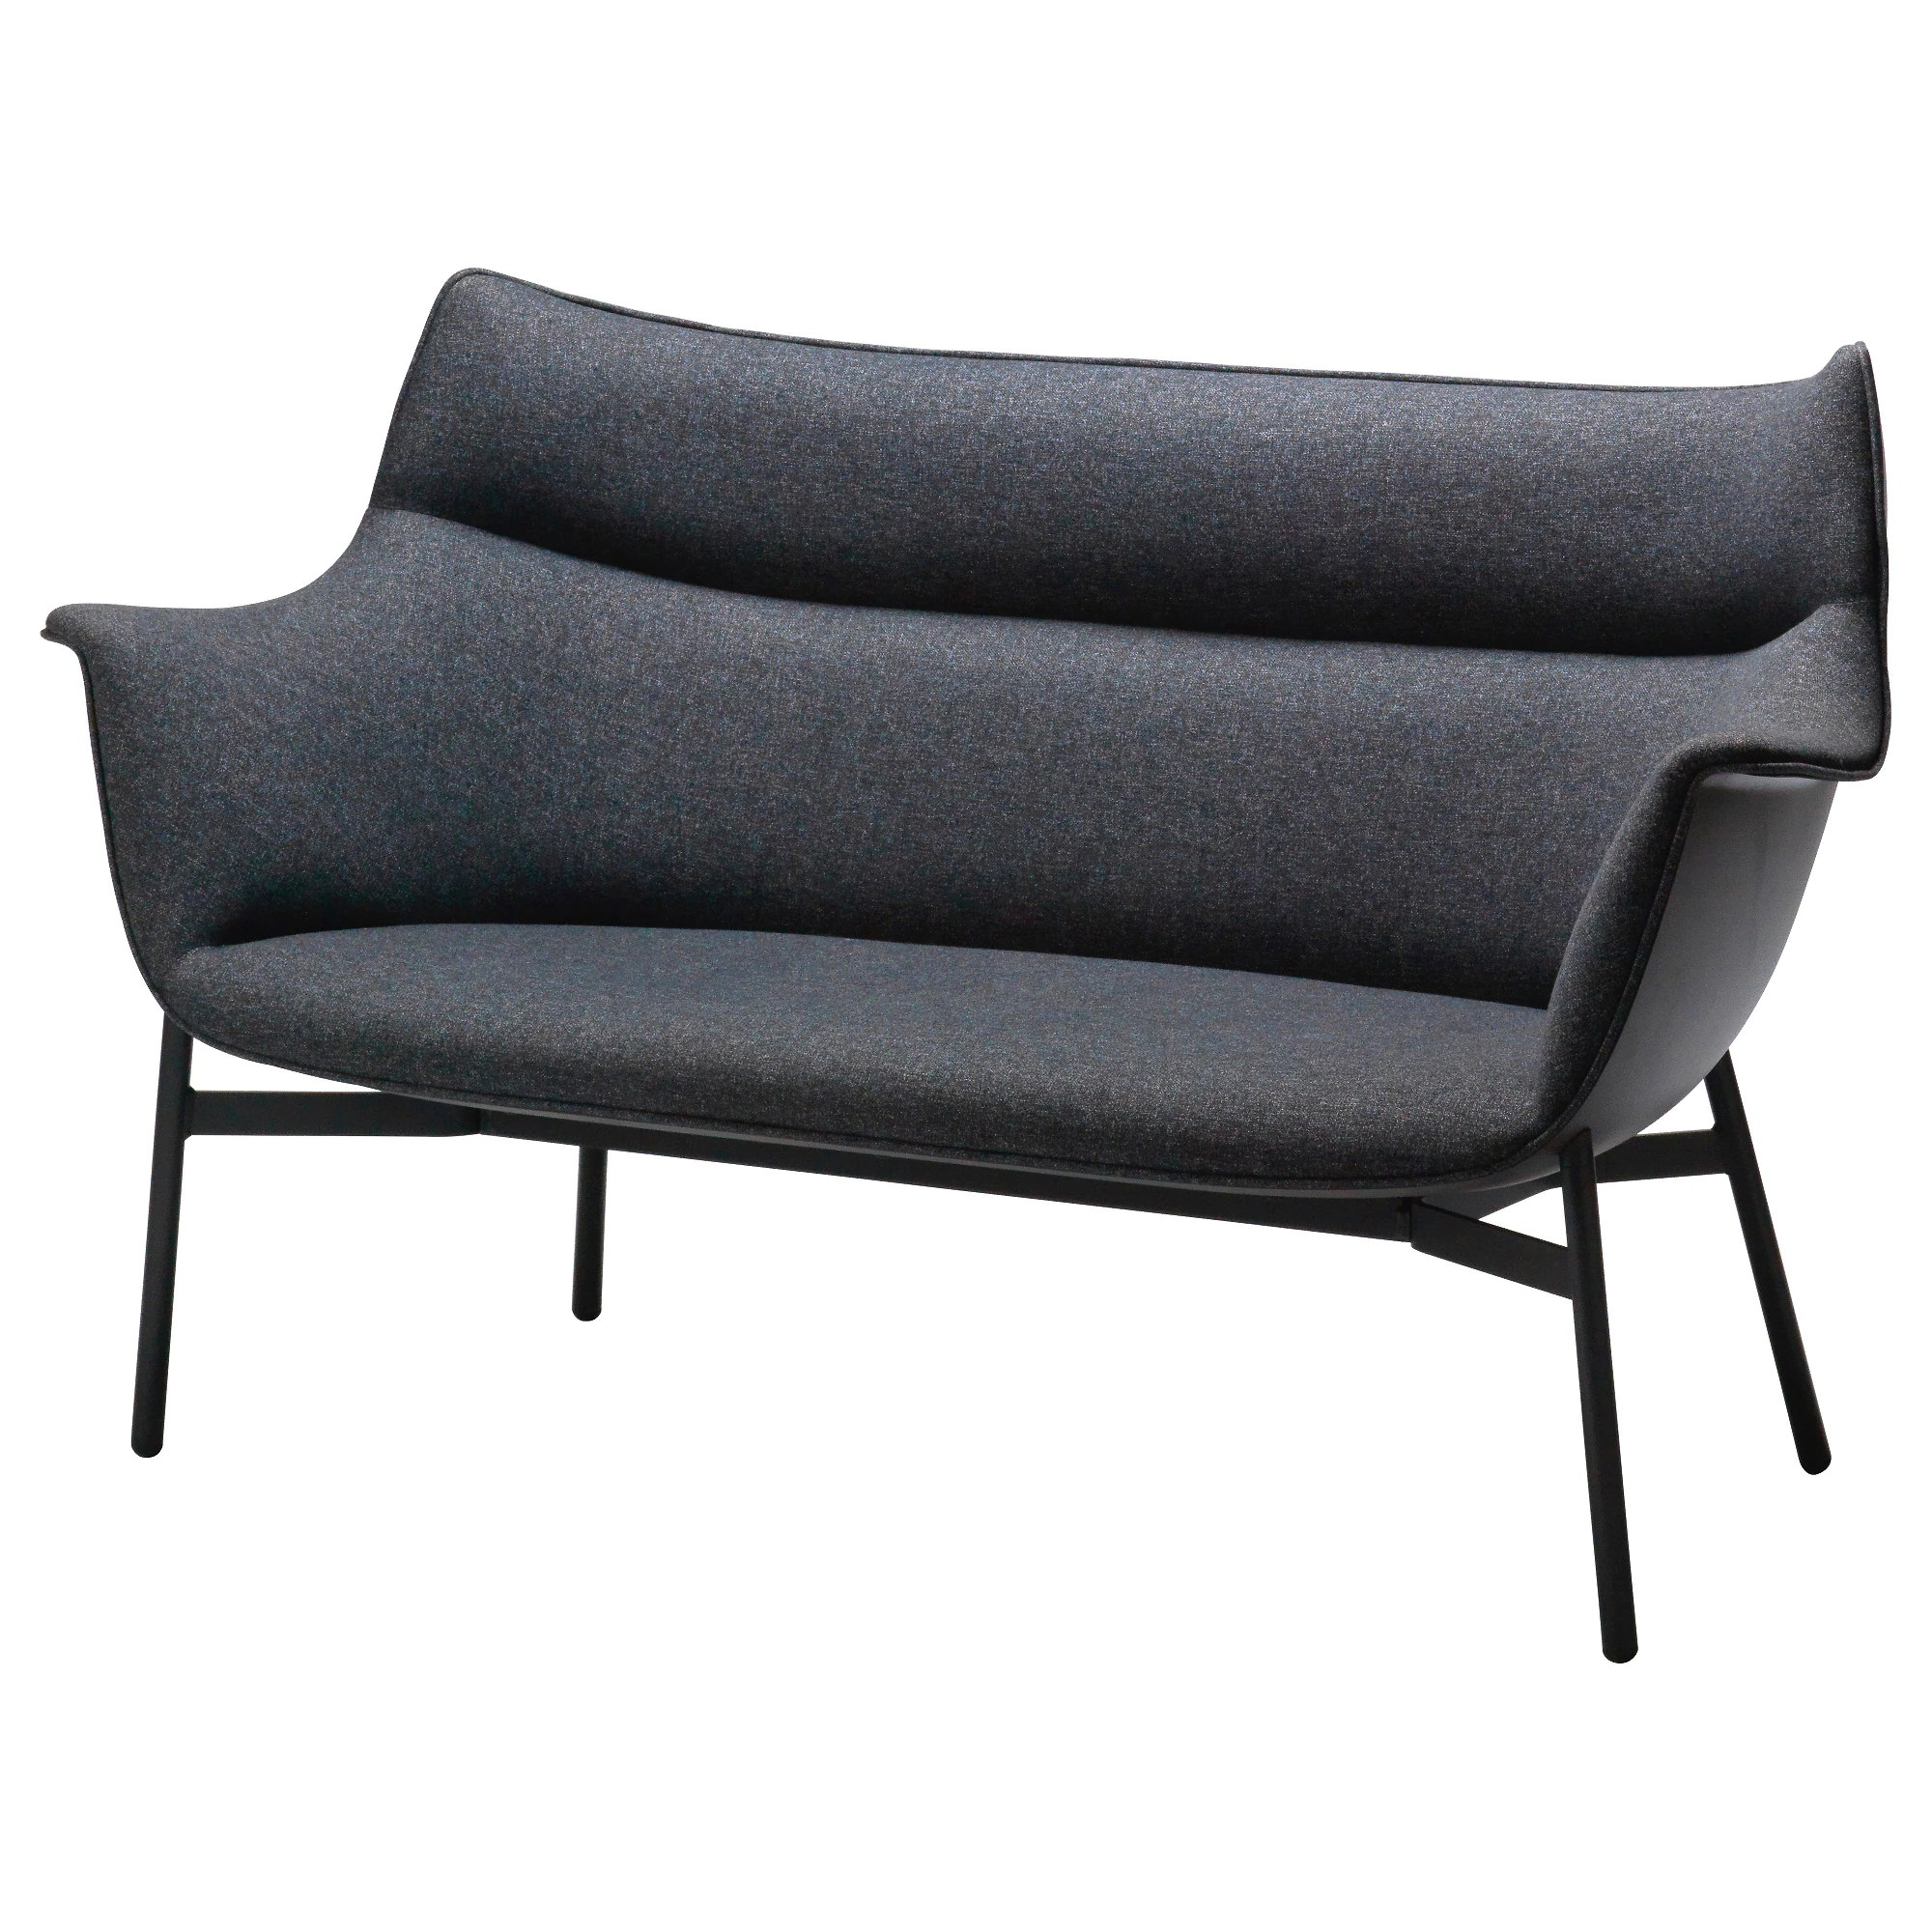 Eichholtz Sessel Blaues Samtsofa Shop Seating In 2019 Sofa Velvet Und T